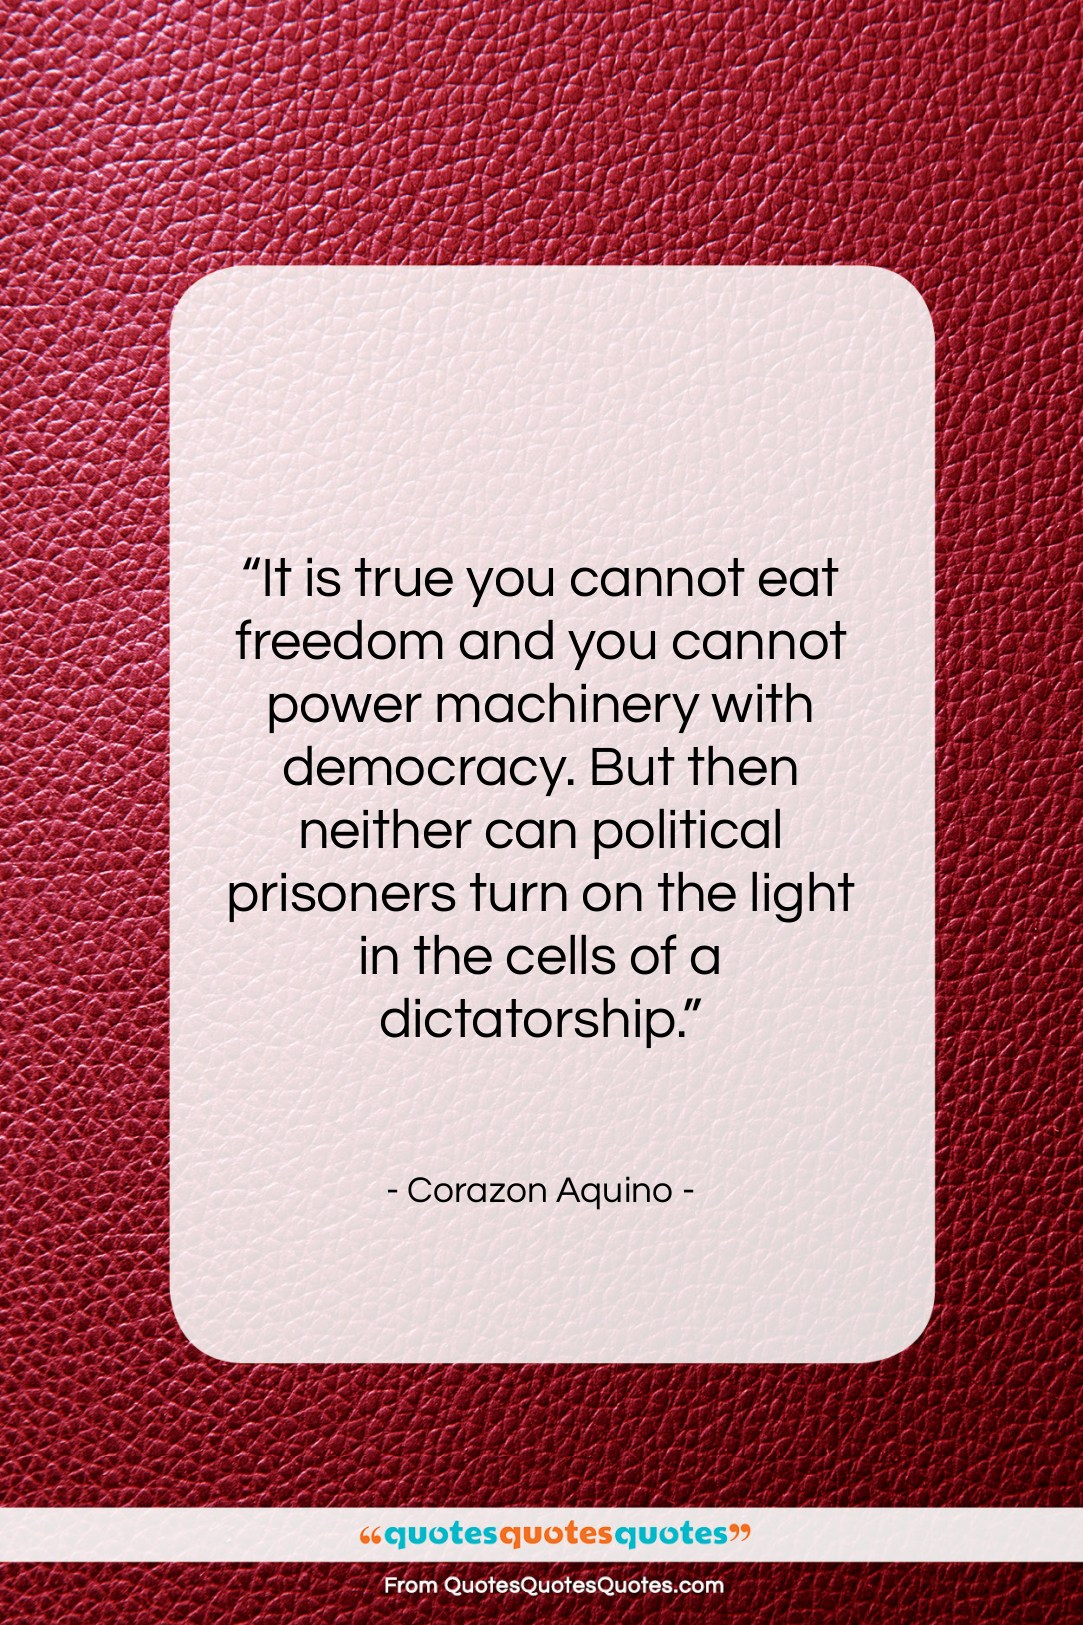 """Corazon Aquino quote: """"It is true you cannot eat freedom…""""- at QuotesQuotesQuotes.com"""